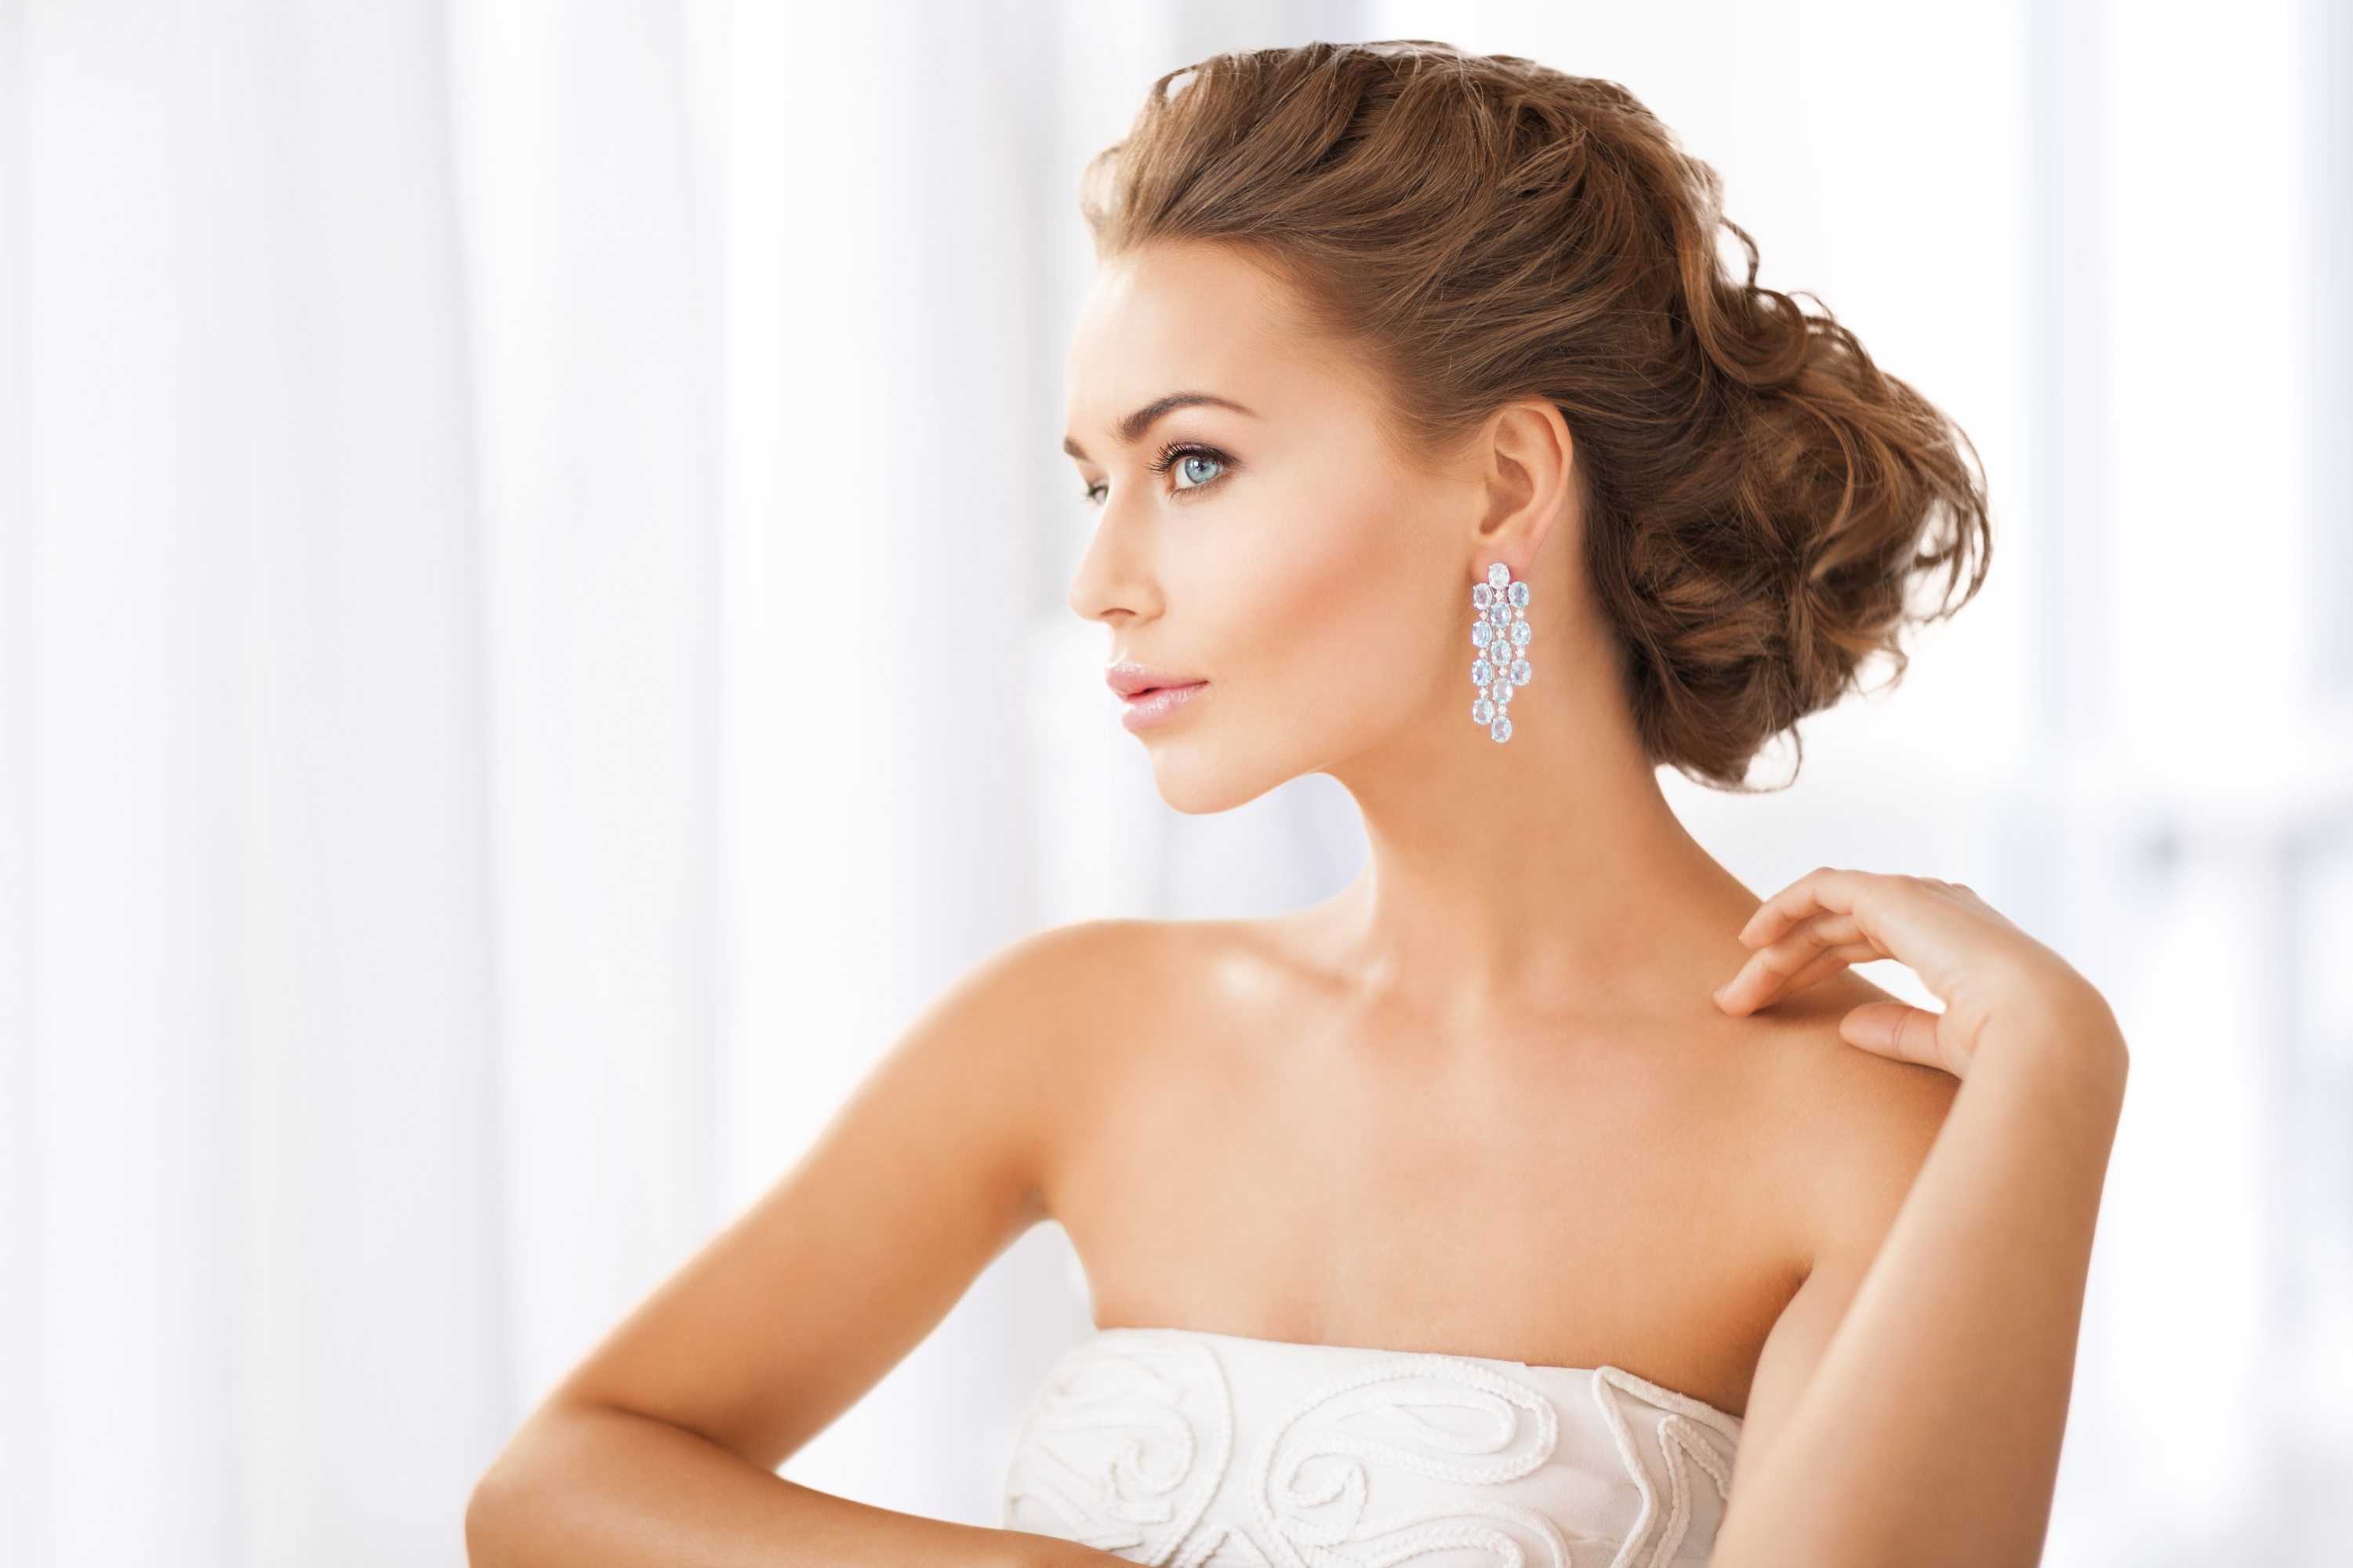 skincare   skincare tips   skincare tips for the bride to be   bride   wedding   glowing skin   bridal beauty   skincare routine   perfect skin